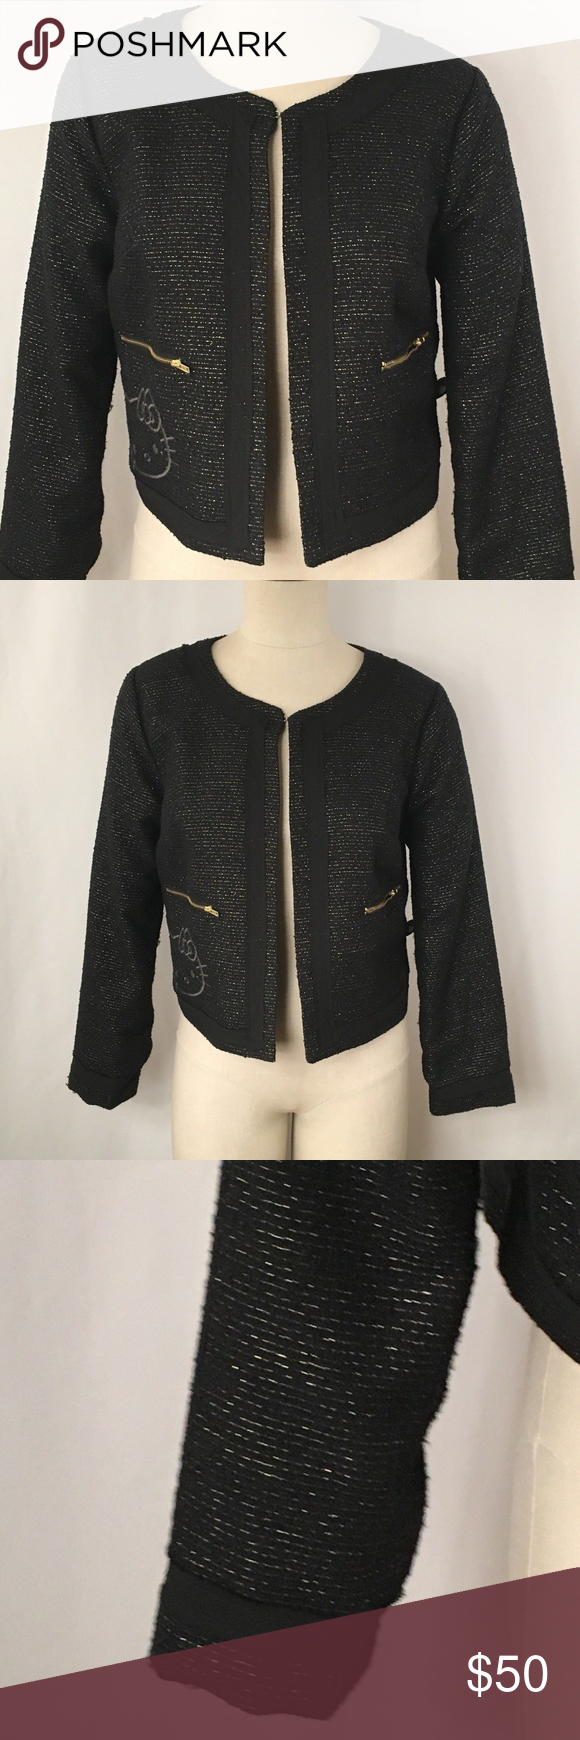 bed139a4b Hello Kitty Jacket Womens Large Black Blazer Hello Kitty Size large Color  black with metallic gold